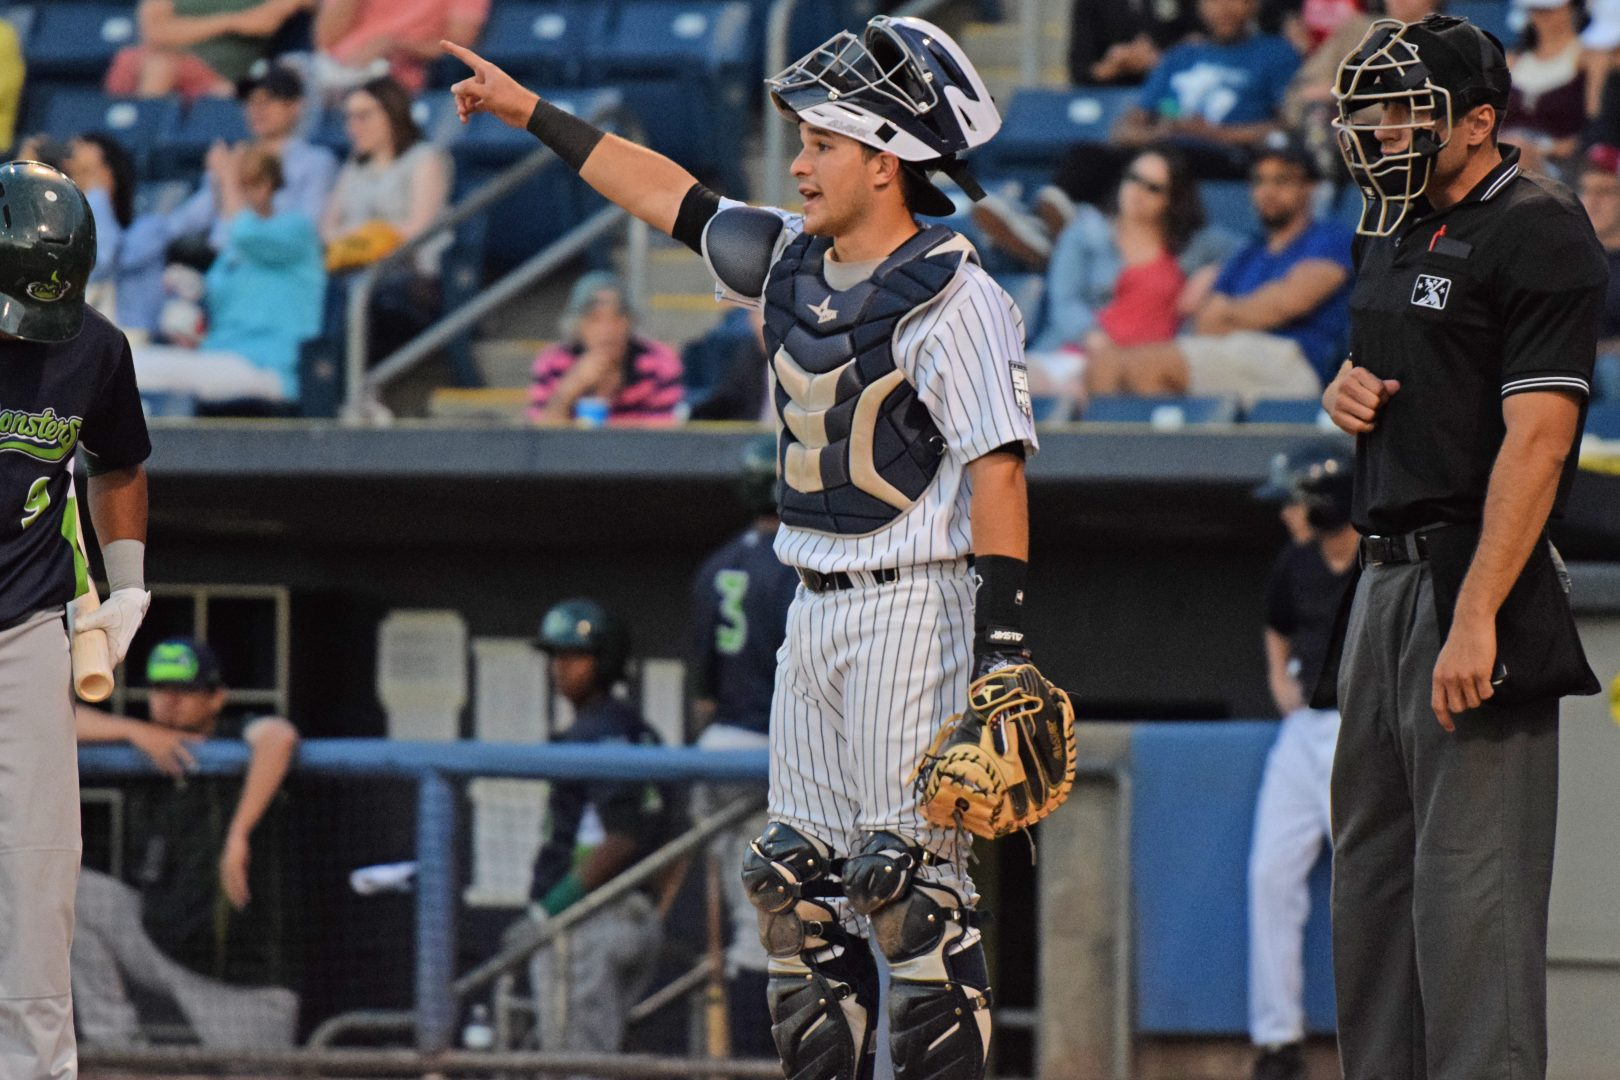 Luis Torrens signals to the Staten Island Yankees defense (Robert M. Pimpsner)